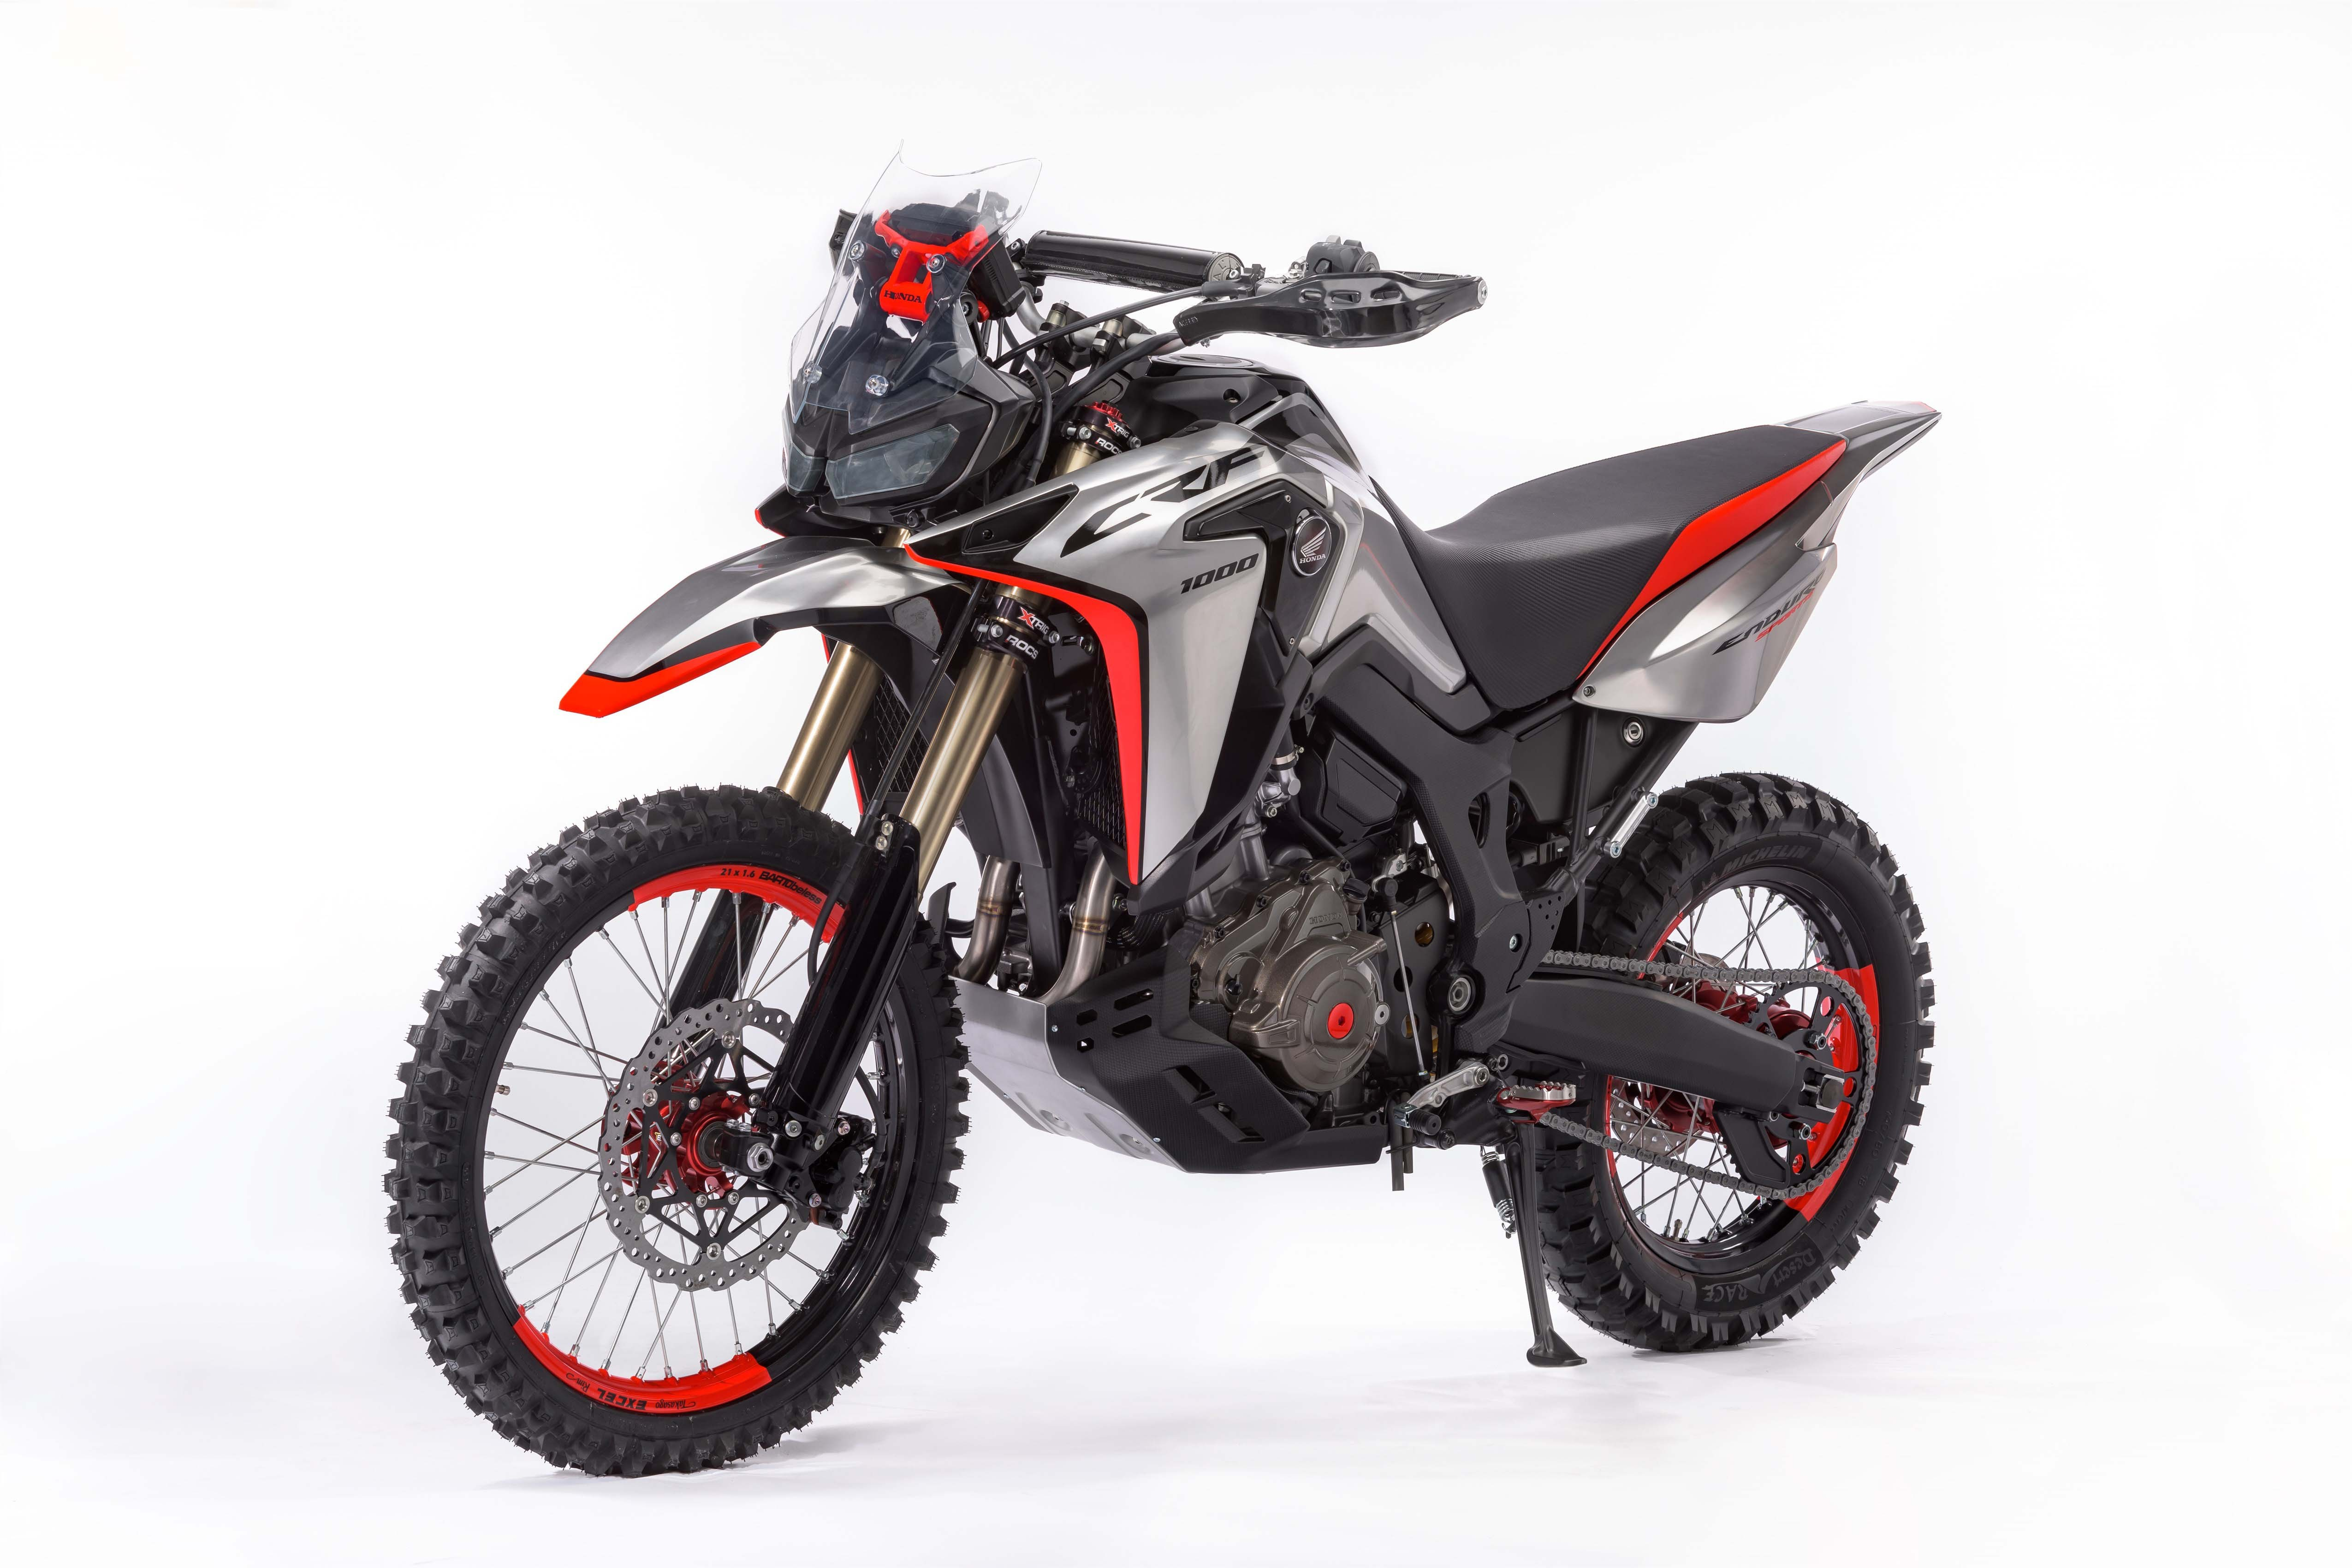 The Honda Africa Twin Enduro Concept Is A Giant Dirt Bike | Cycle World